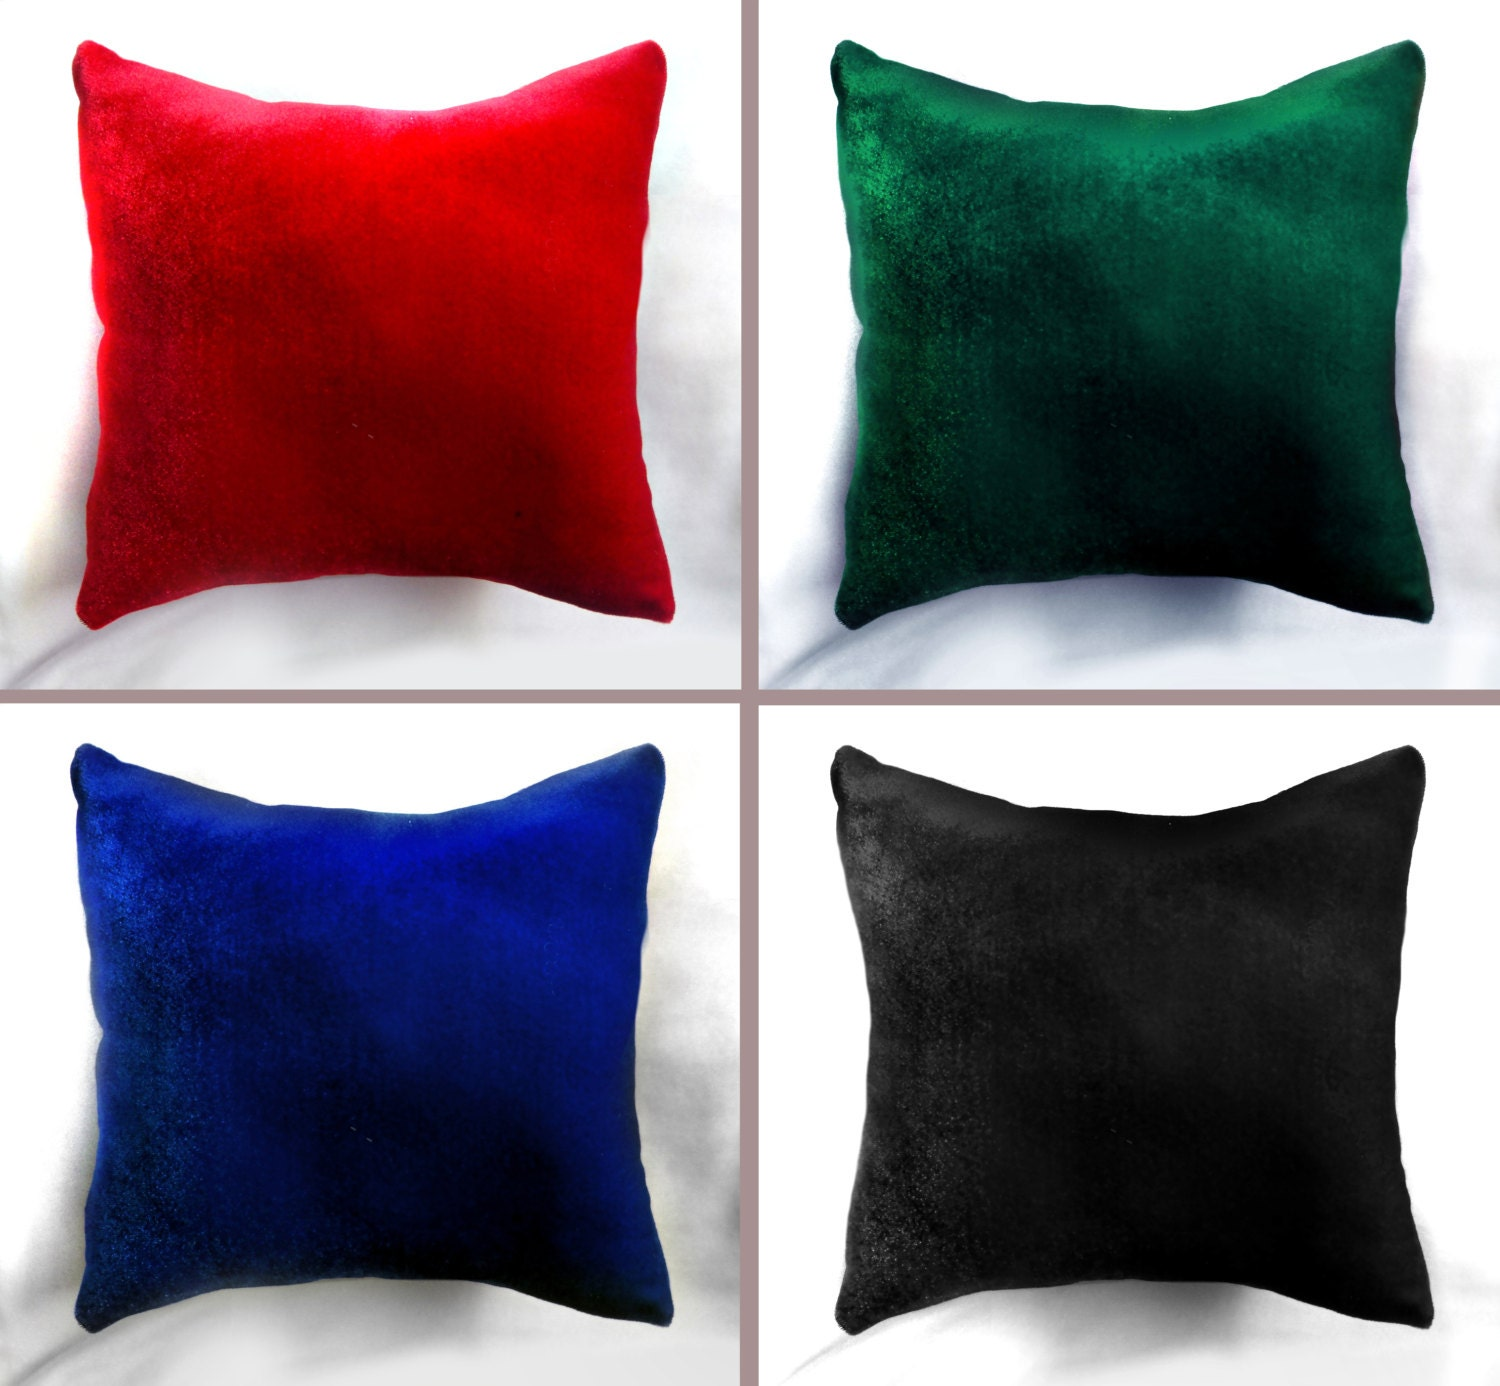 Throw Pillows Velvet : Velvet Pillow 12x12. Decorative Throw Pillow New